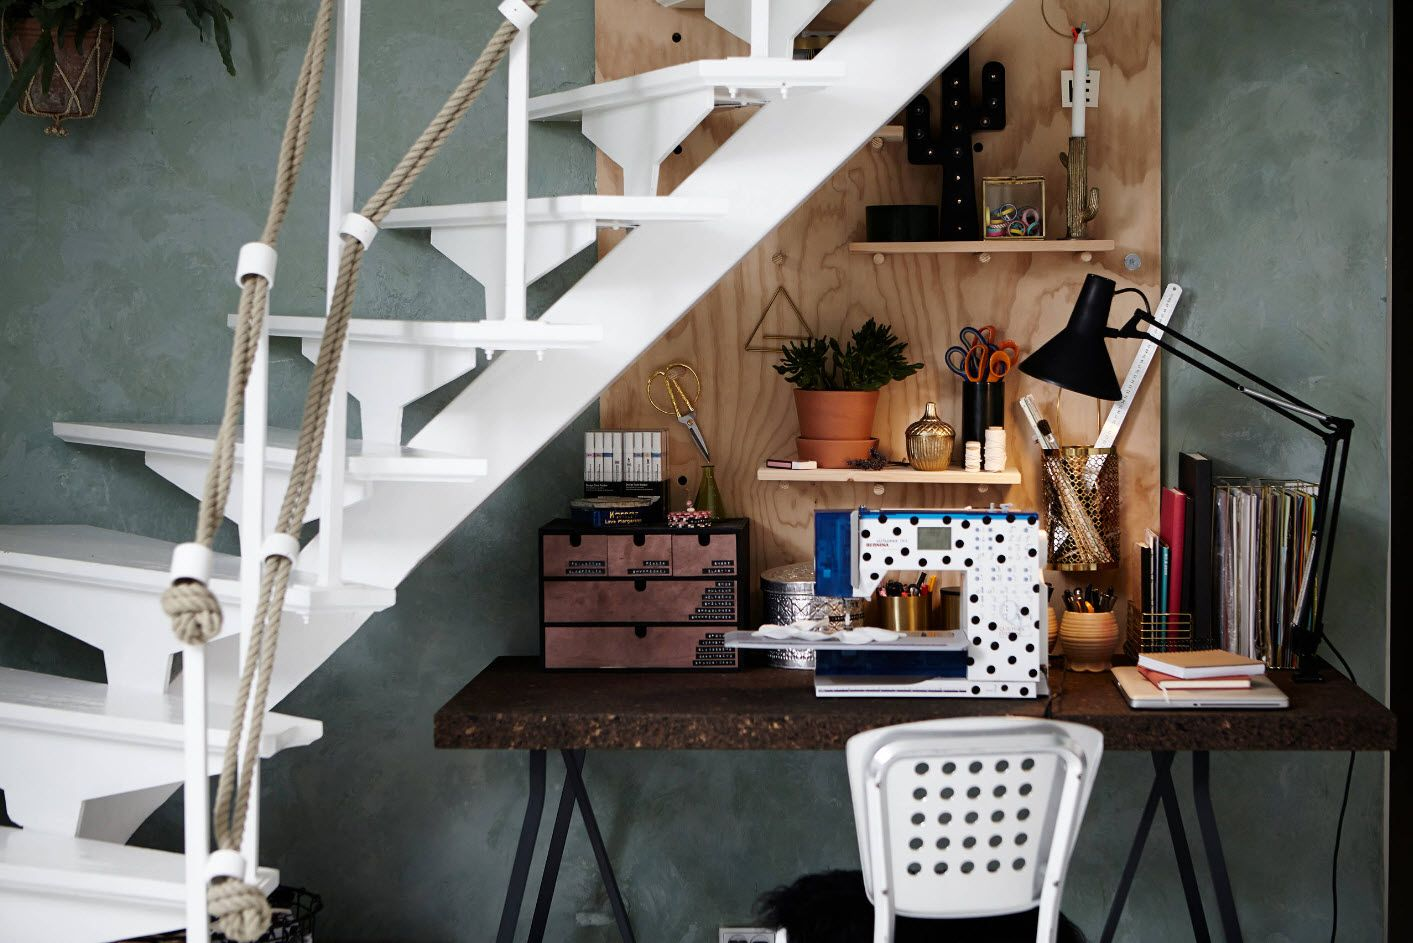 Top 100 Modern Home Office Design Trends 2017. Rustic style with wooden elements for the working space